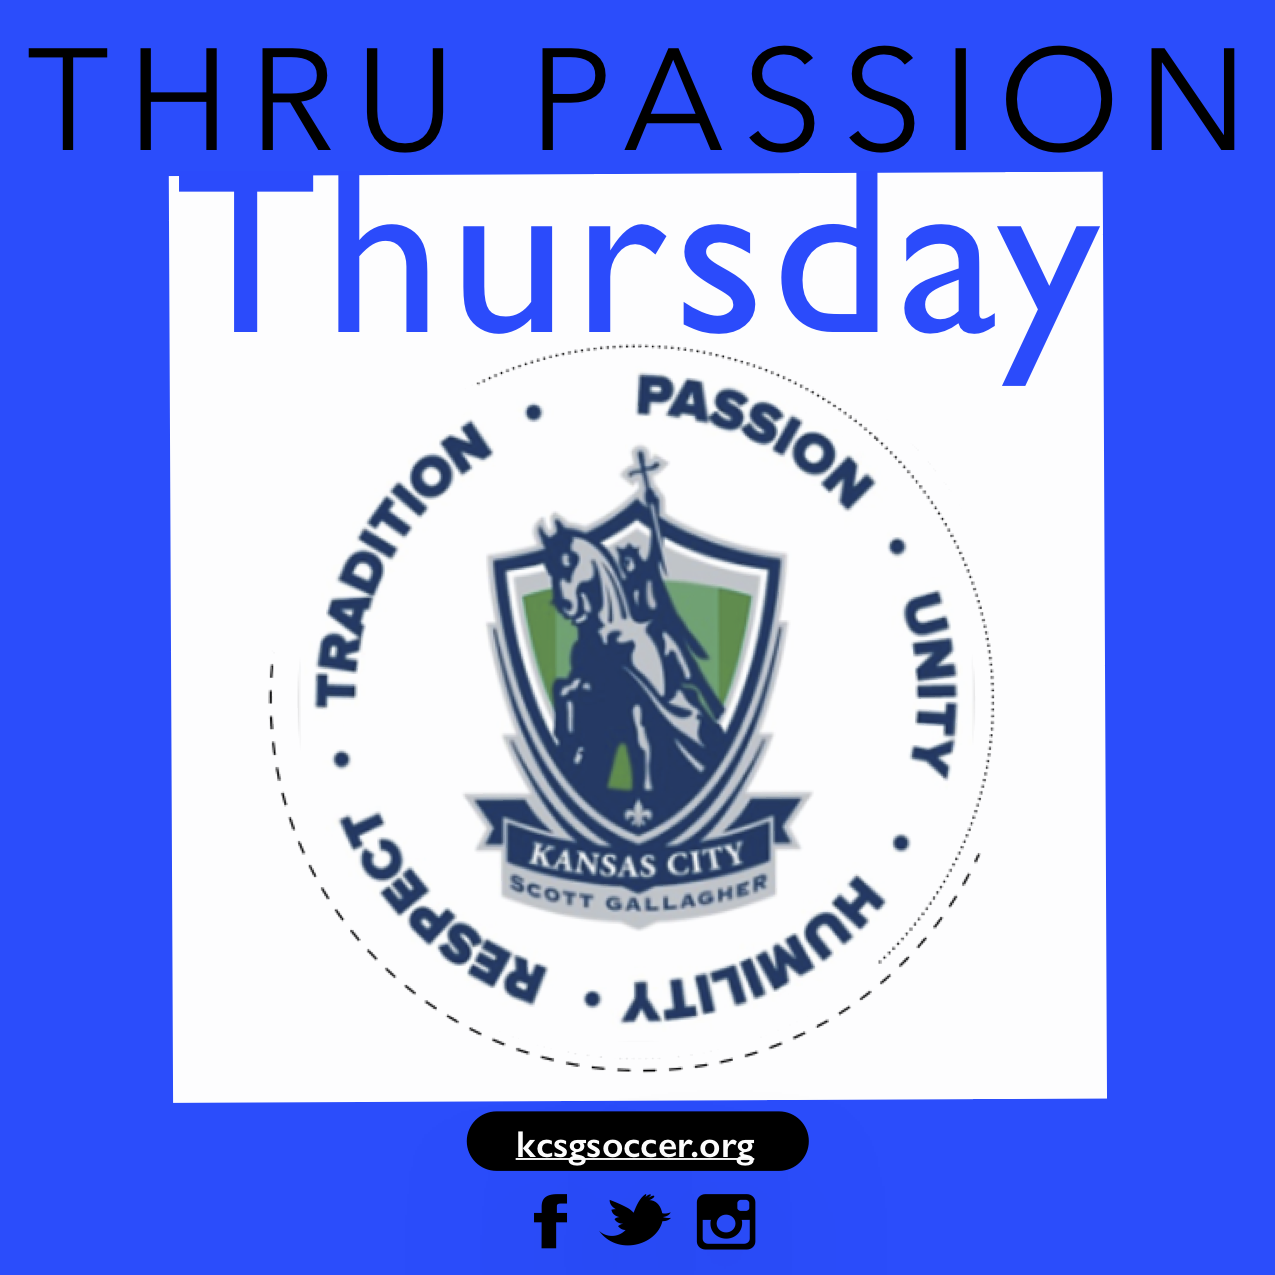 Thru Passion Thursday